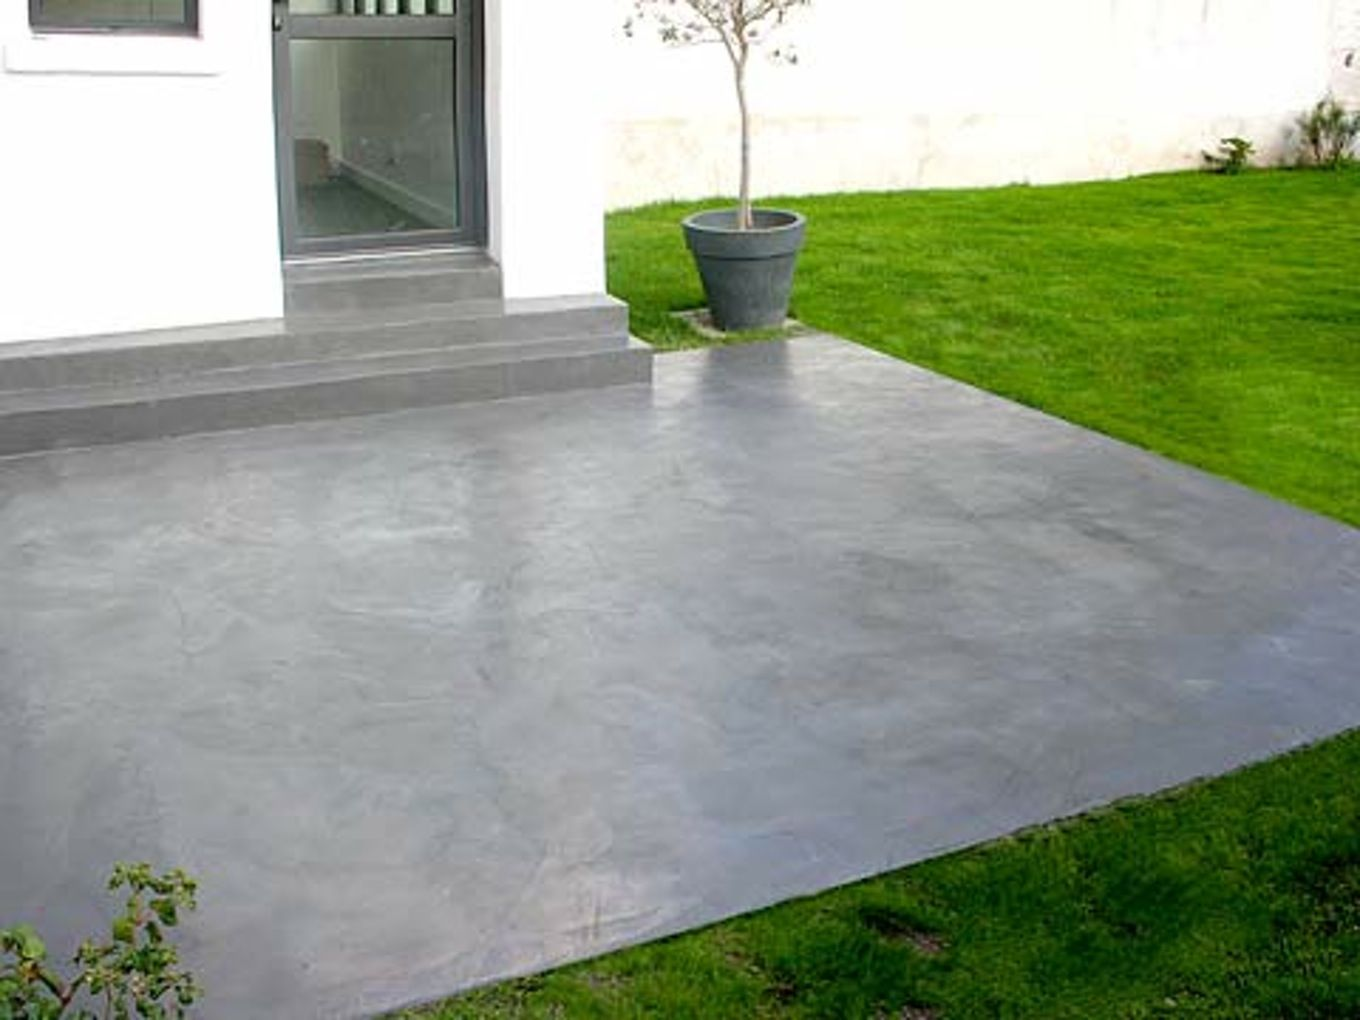 Incredible decoration peindre beton exterieur peinture for Peinture piscine beton